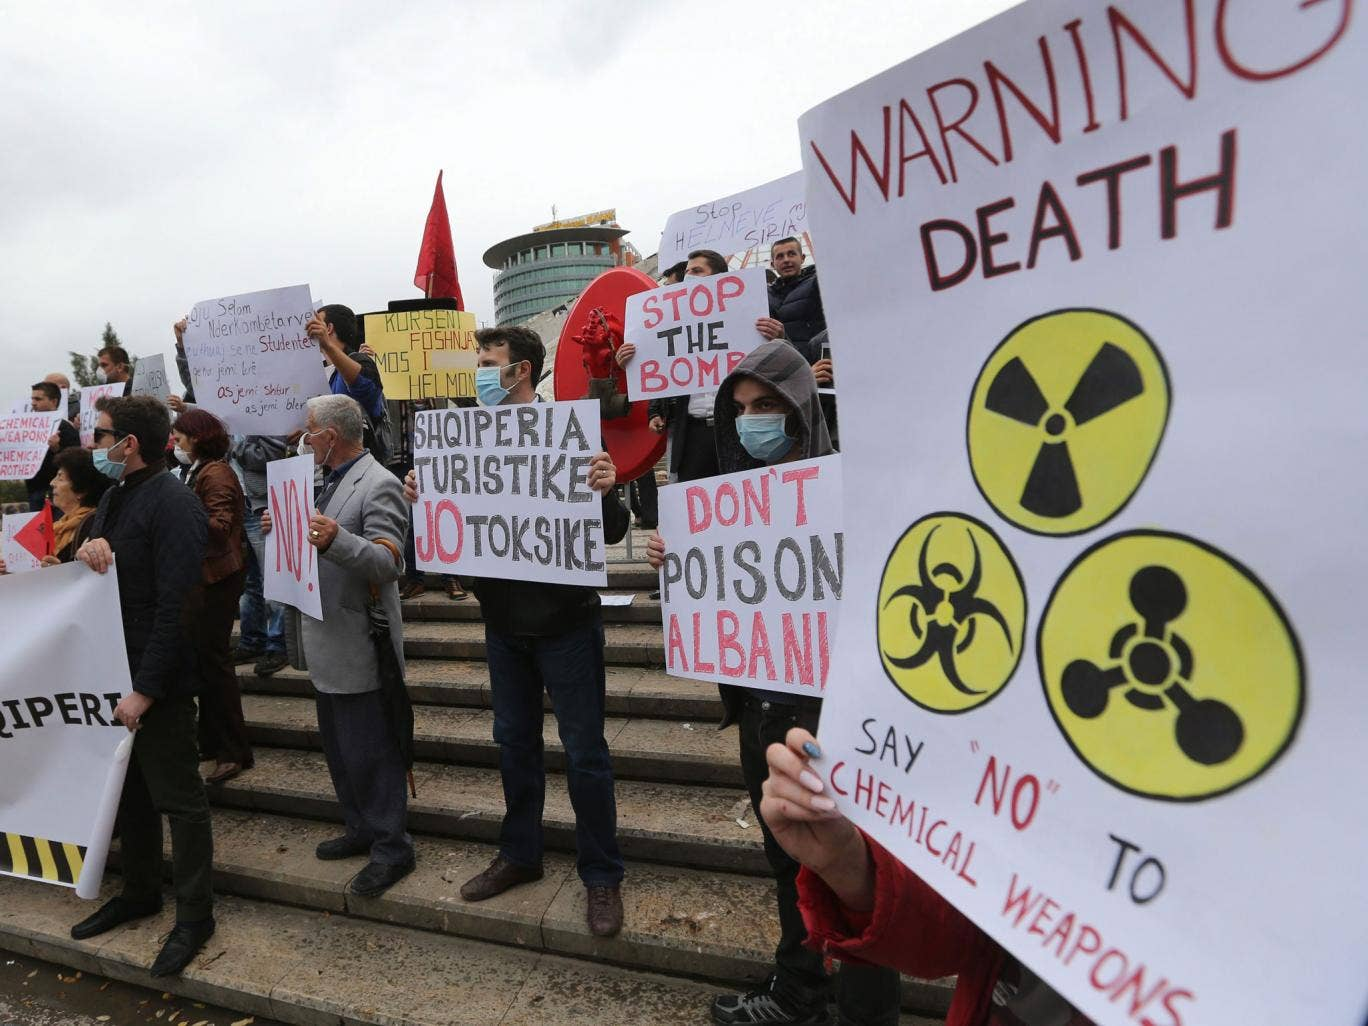 Albanian citizens hold placards during a protest against chemical weapons in front of Albanian Prime Minister's office in Tirana - the country came close to receiving the chemicals